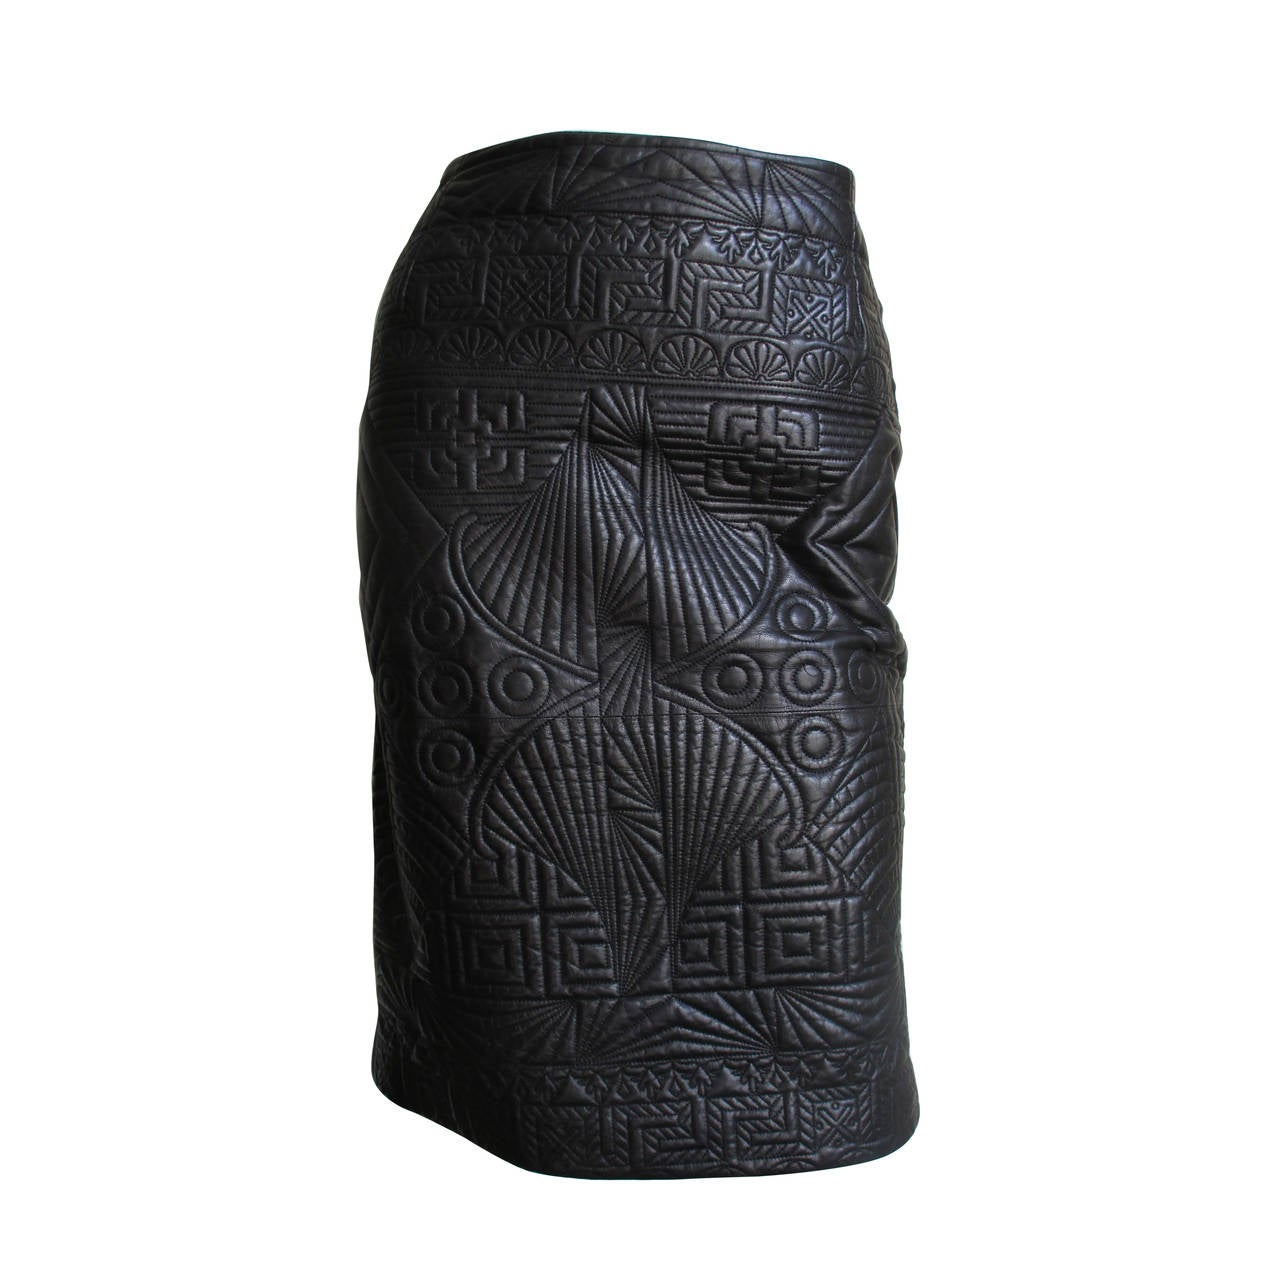 gianni versace trapunto embroidered leather skirt at 1stdibs